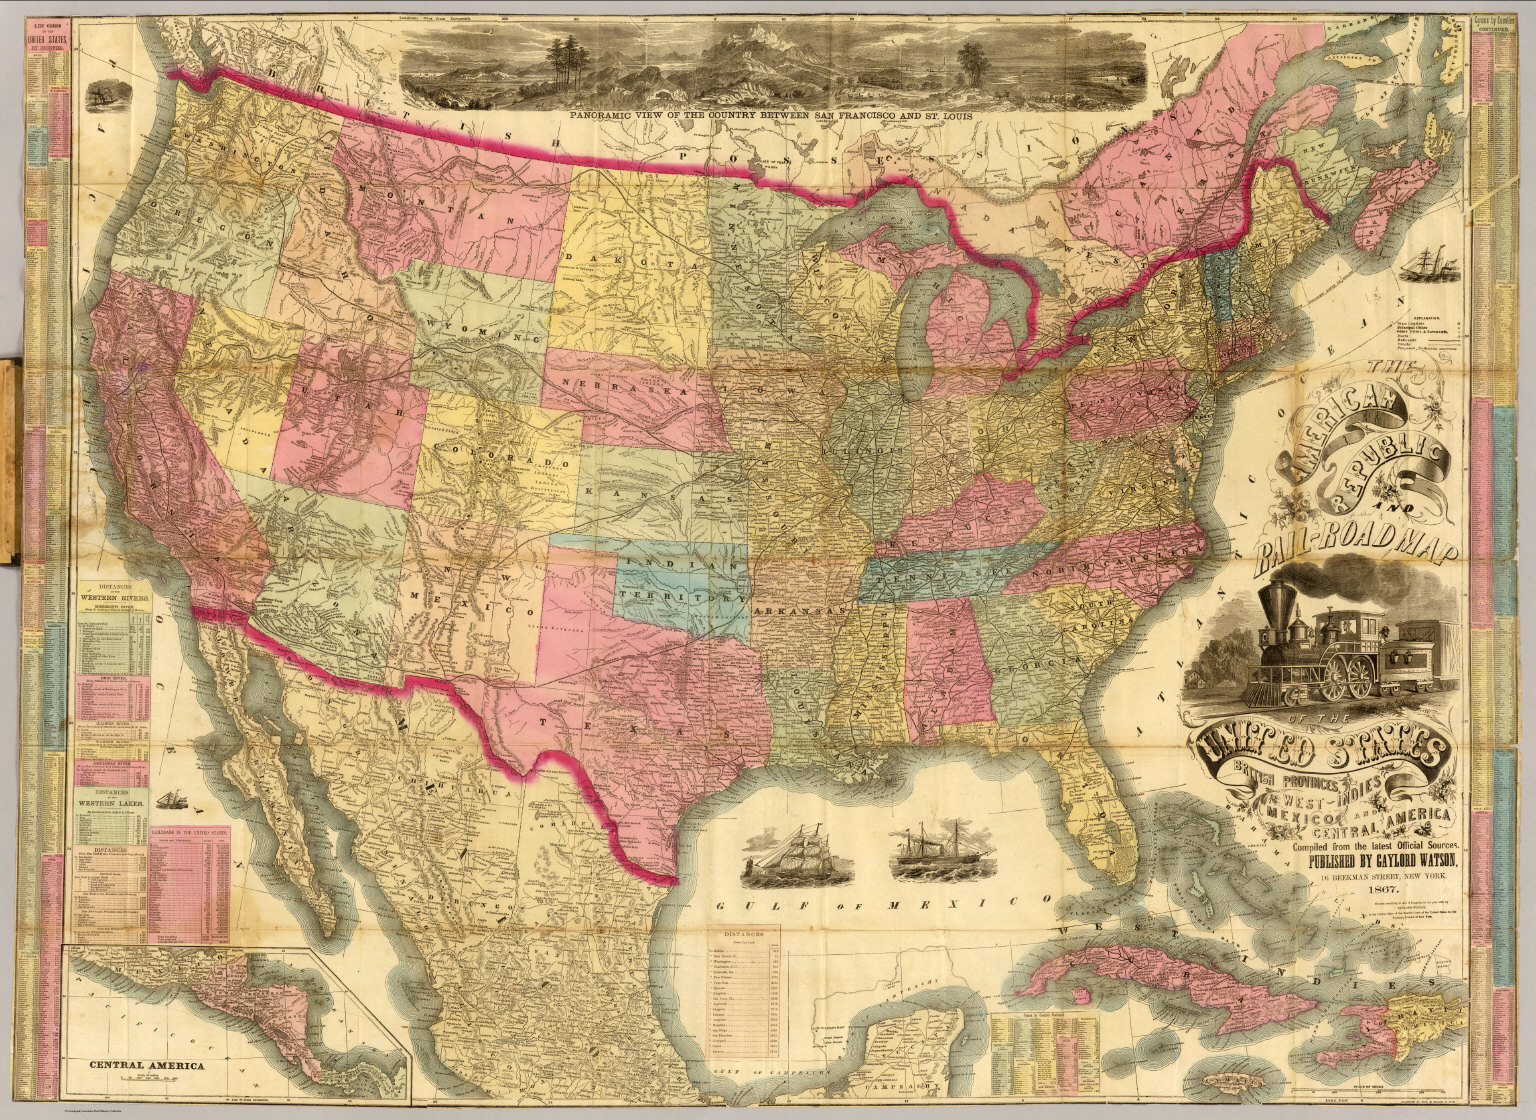 The American Republic and railroad map of the United States